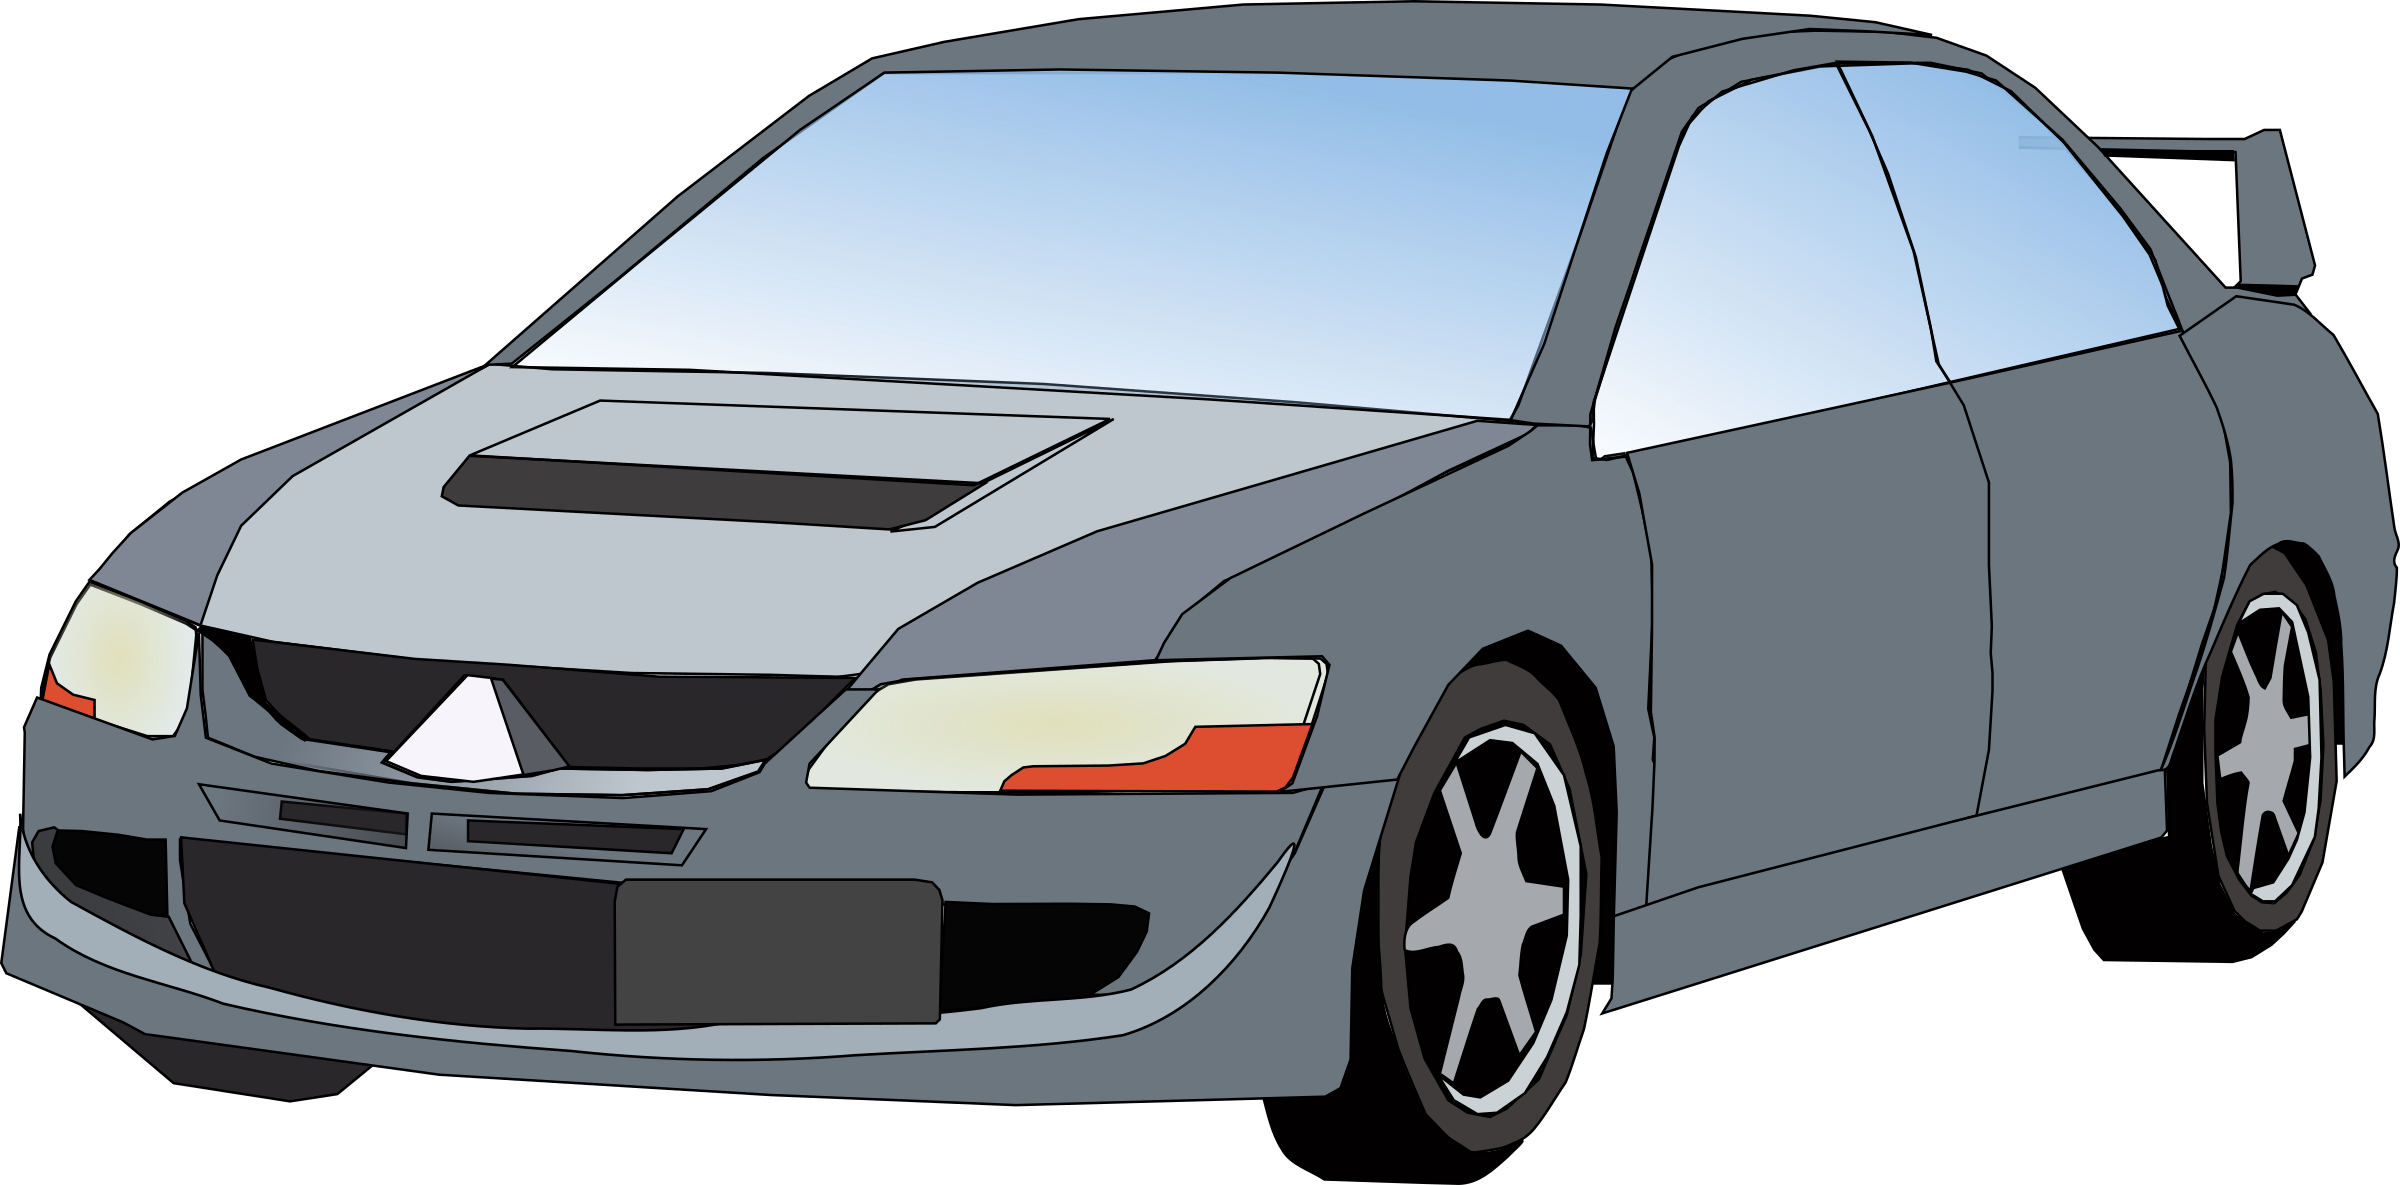 Grey car clipart clipart royalty free library Clipart - car Mitsubishi clipart royalty free library